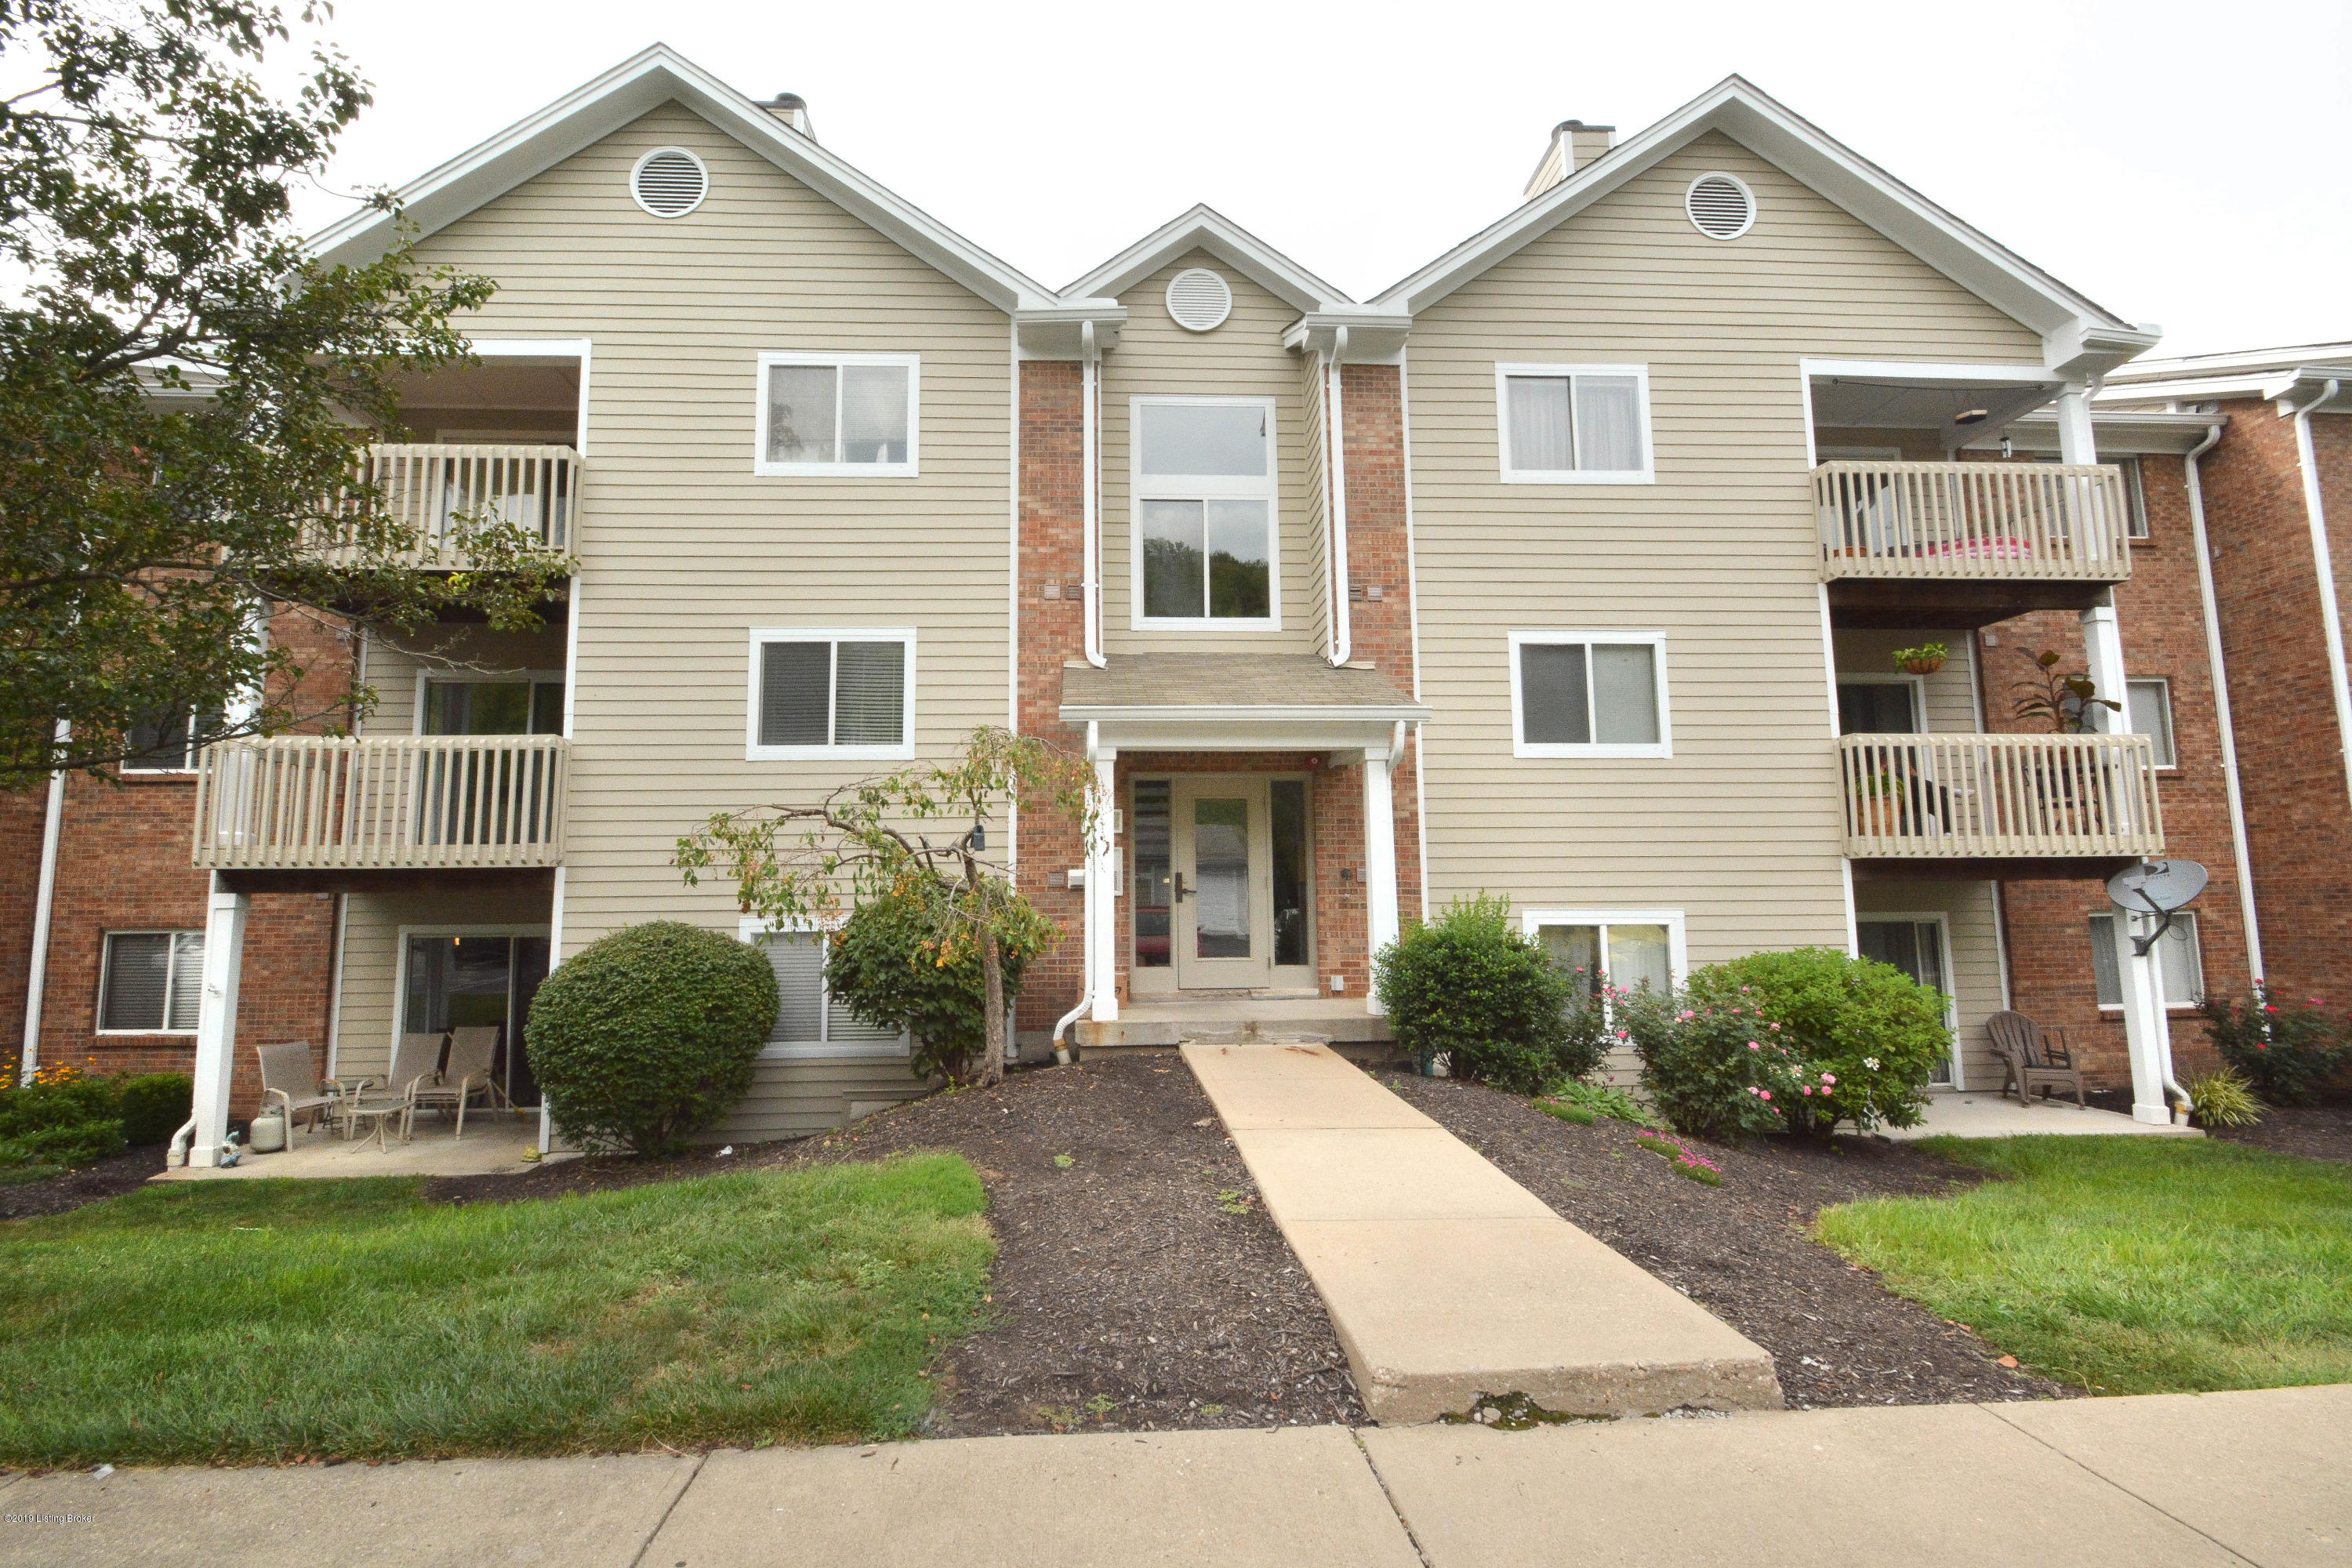 Photo of 410 Lakeview 5 Dr